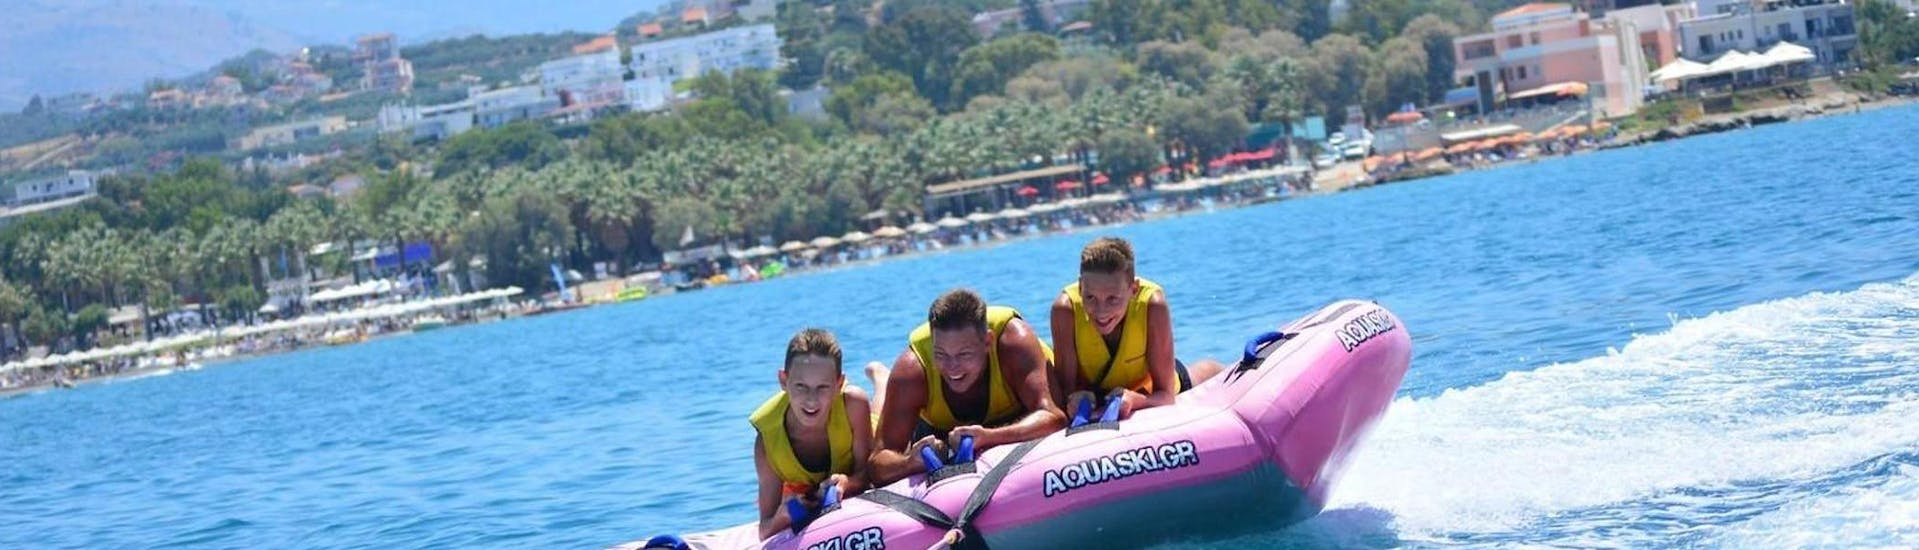 A family is having fun during the Airstream Ride in Agia Marina activity with Cactus Water Sports Center.